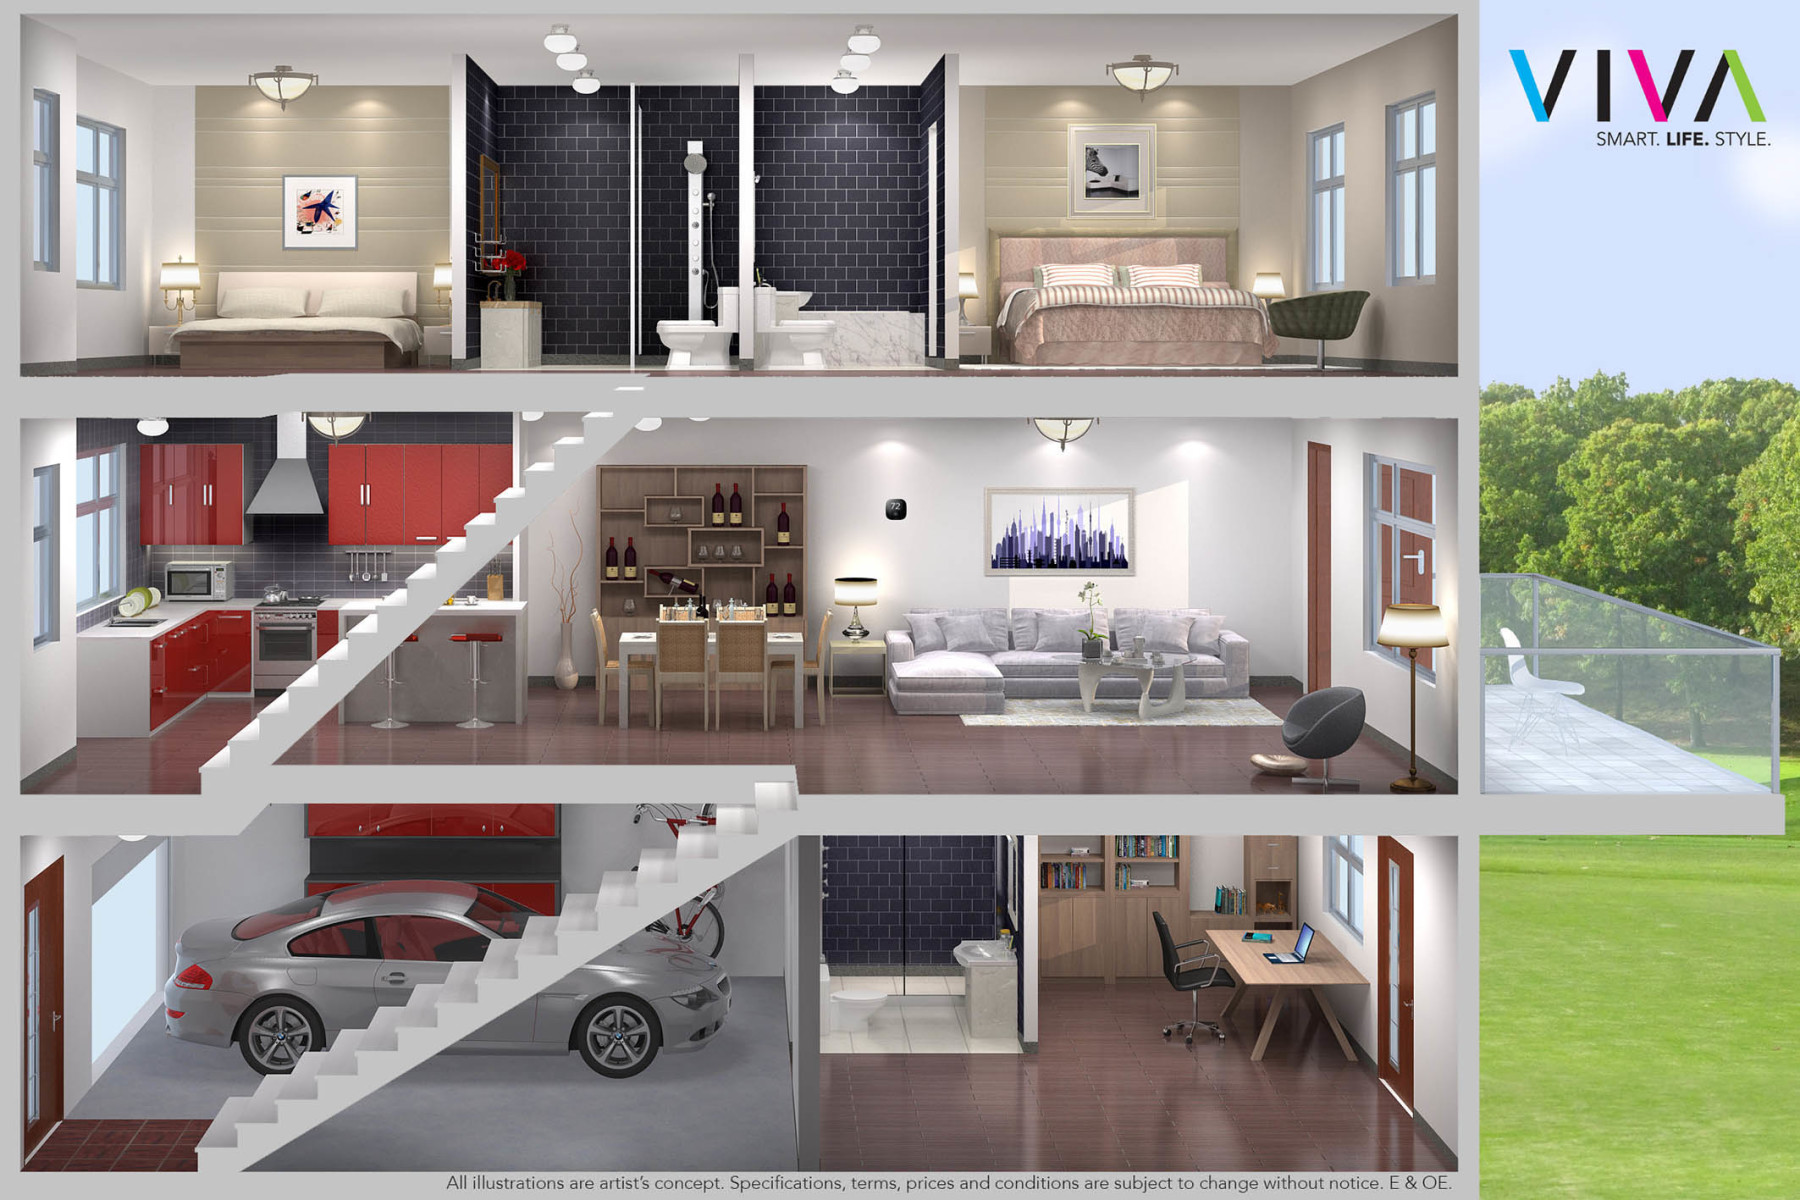 Interior design viva home - Practical Modular But Cool Form And Function Every Day Living Modern Simple Urban Stylish But Conservative To A Point Fill More Space On The Open